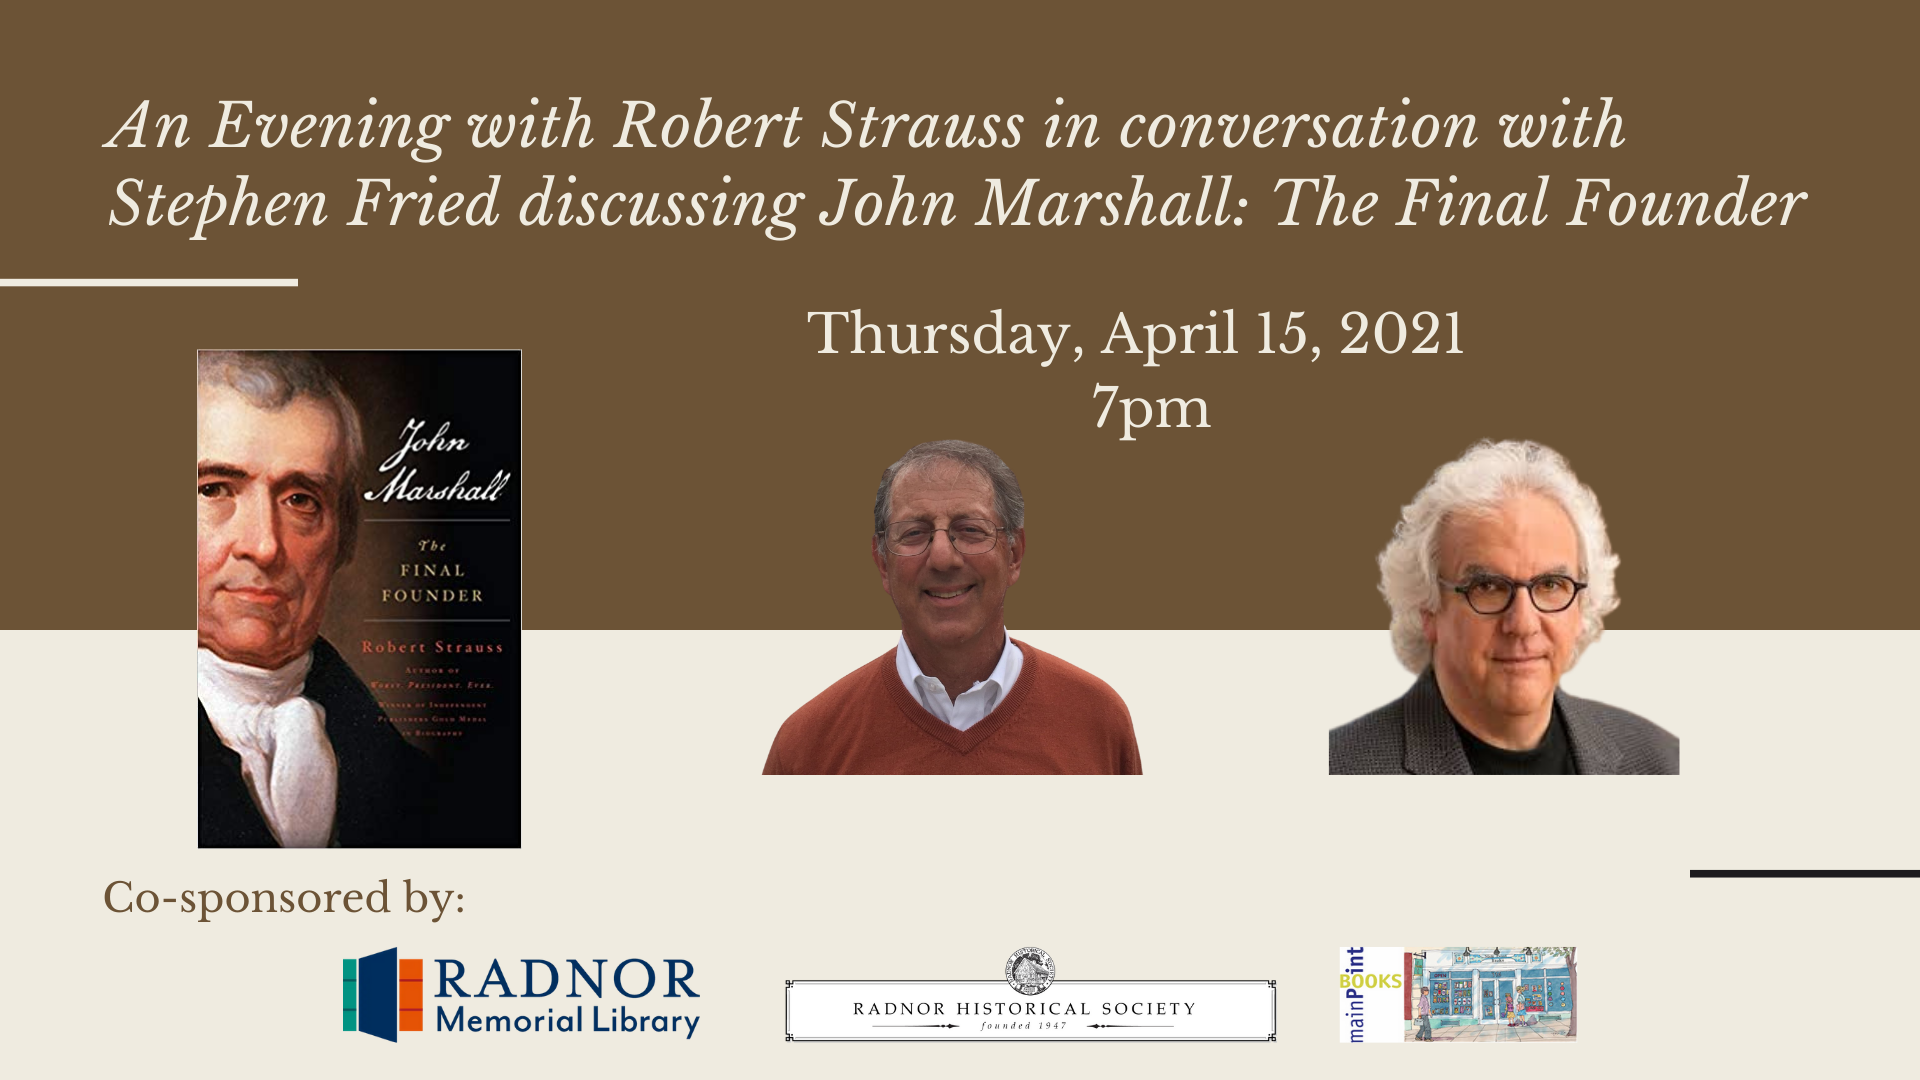 An Evening with Robert Strauss in conversation with Stephen Fried discussing John Marshall: The Final Founder